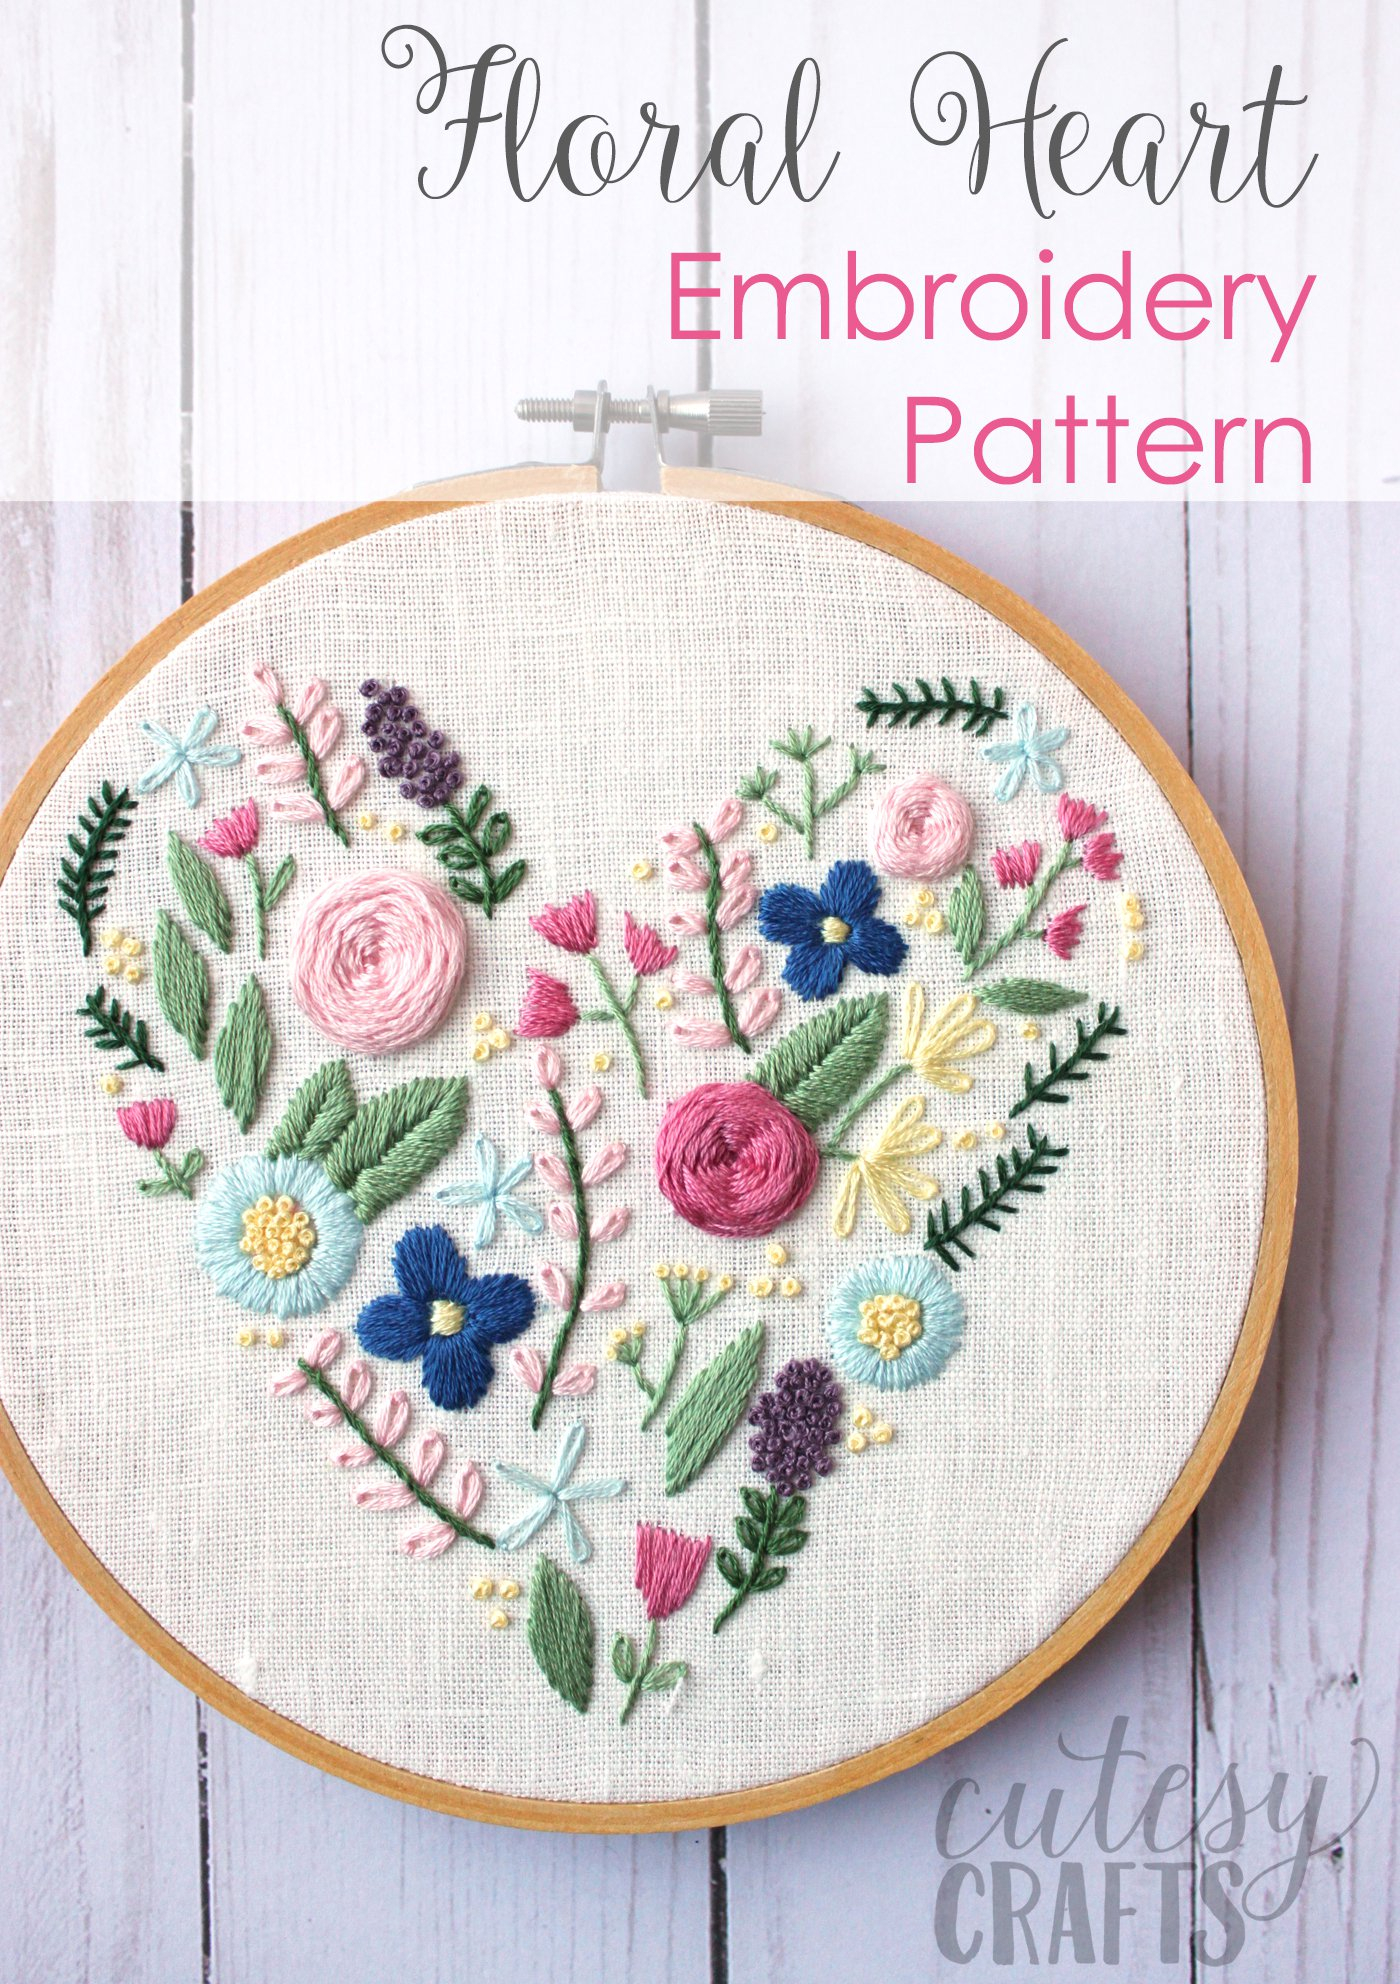 How To Design Embroidery Patterns By Hand Floral Heart Hand Embroidery Pattern The Polka Dot Chair